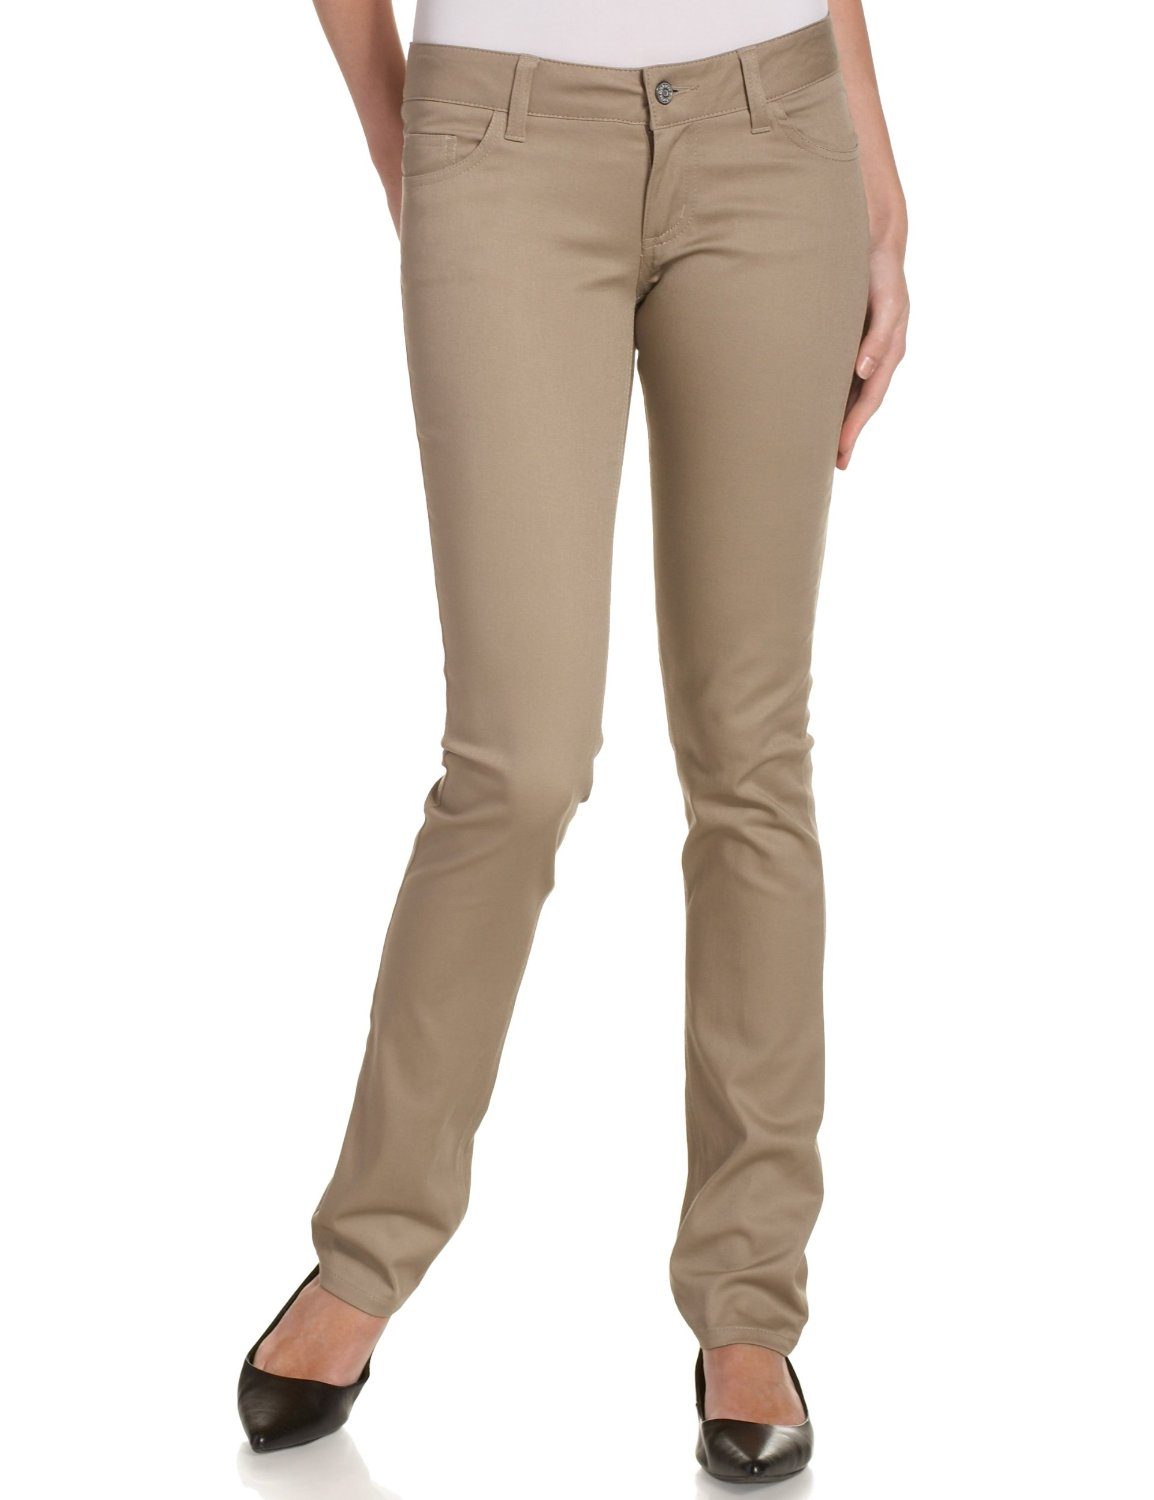 Khaki pants for juniors best selection | All About Cute Khaki ...